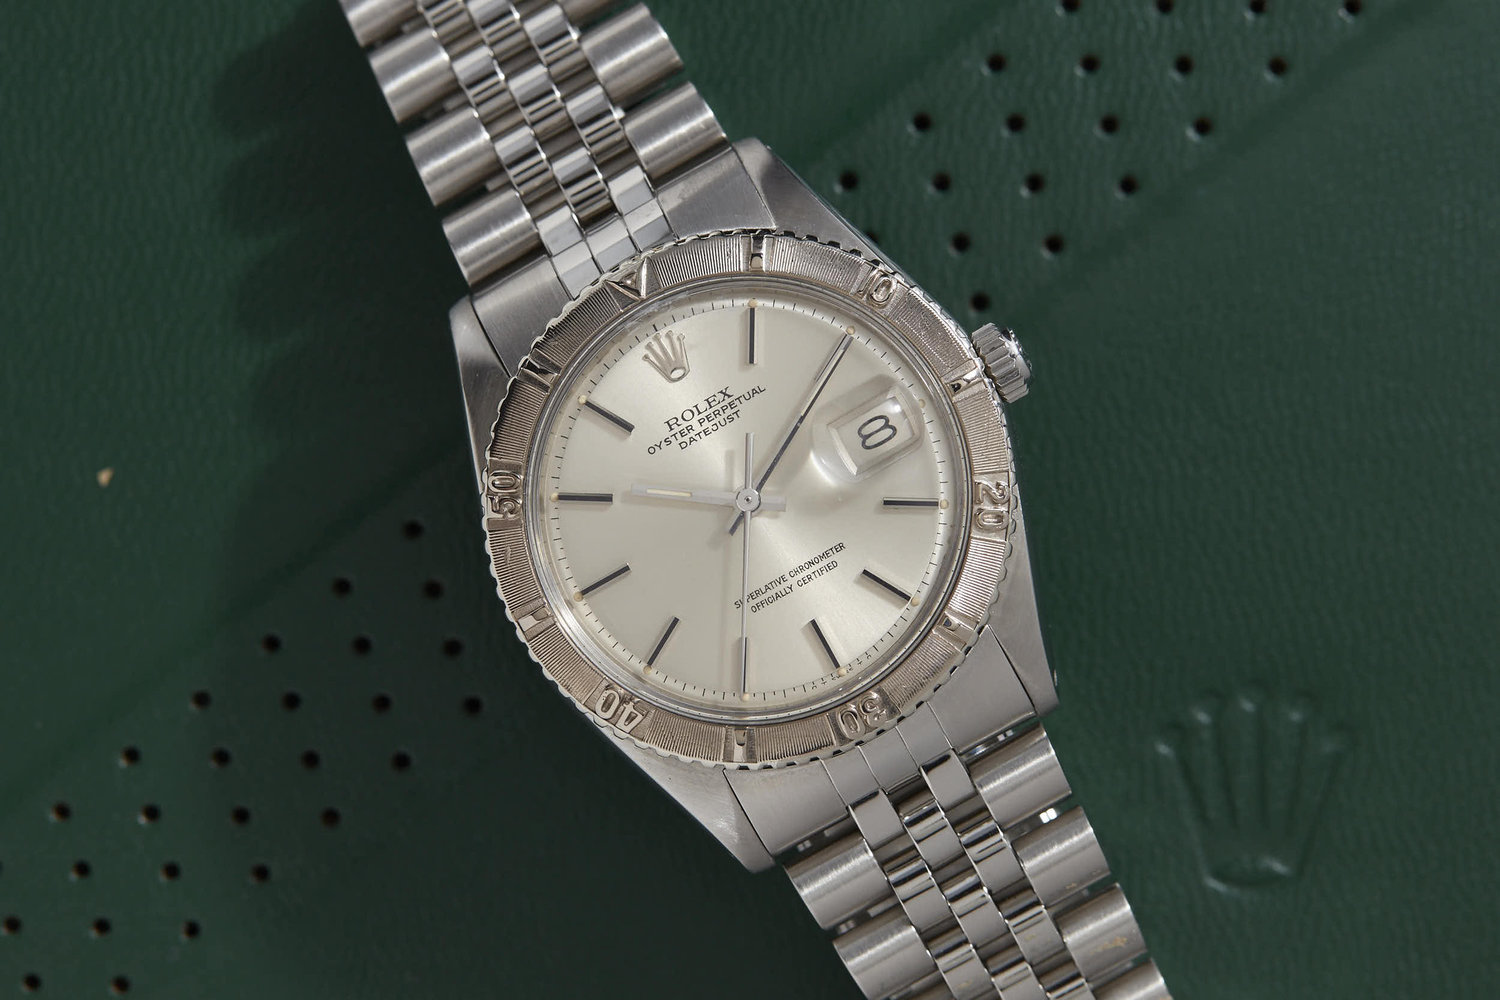 8b905833189 A Brief History of the Rolex Turn-o-graph — Timepiece Chronicle